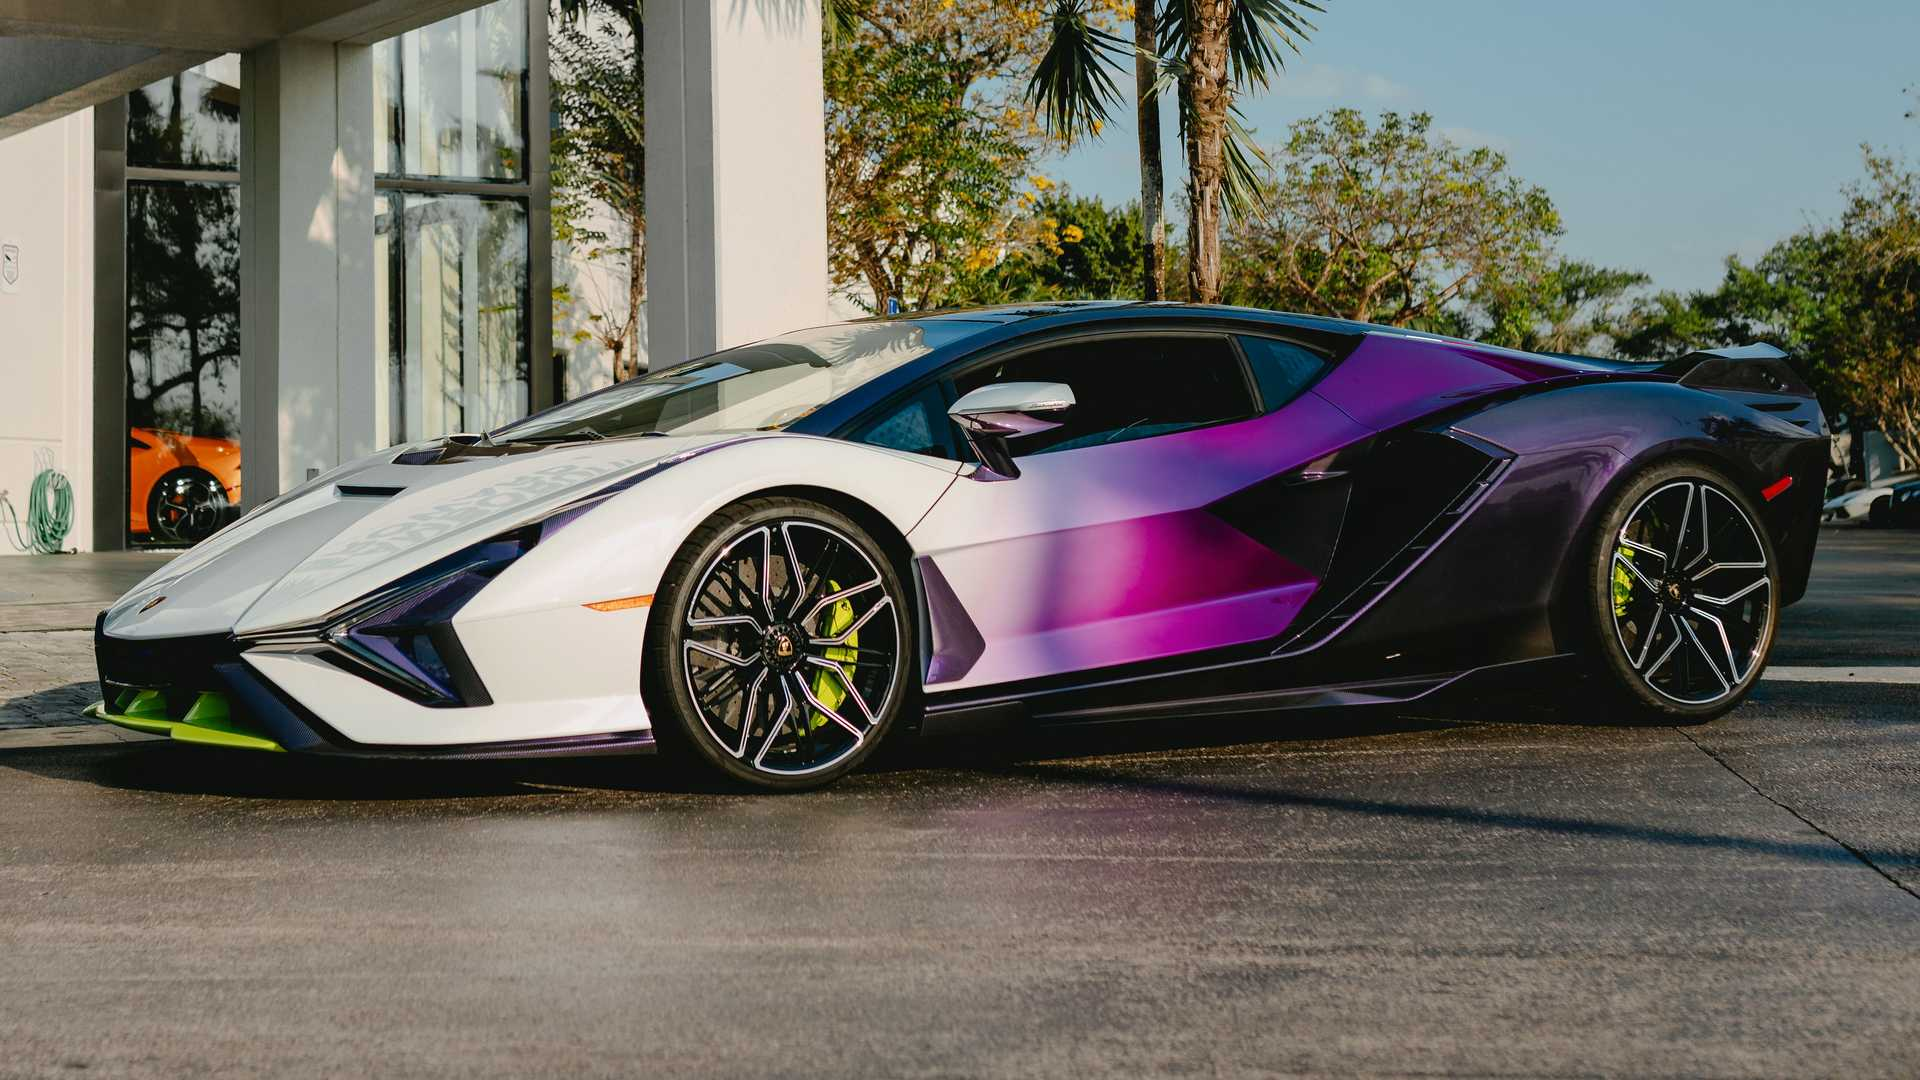 Lamborghini Sian In Purple, Green, And White Side Low Photo By Juan Pablo Saenz